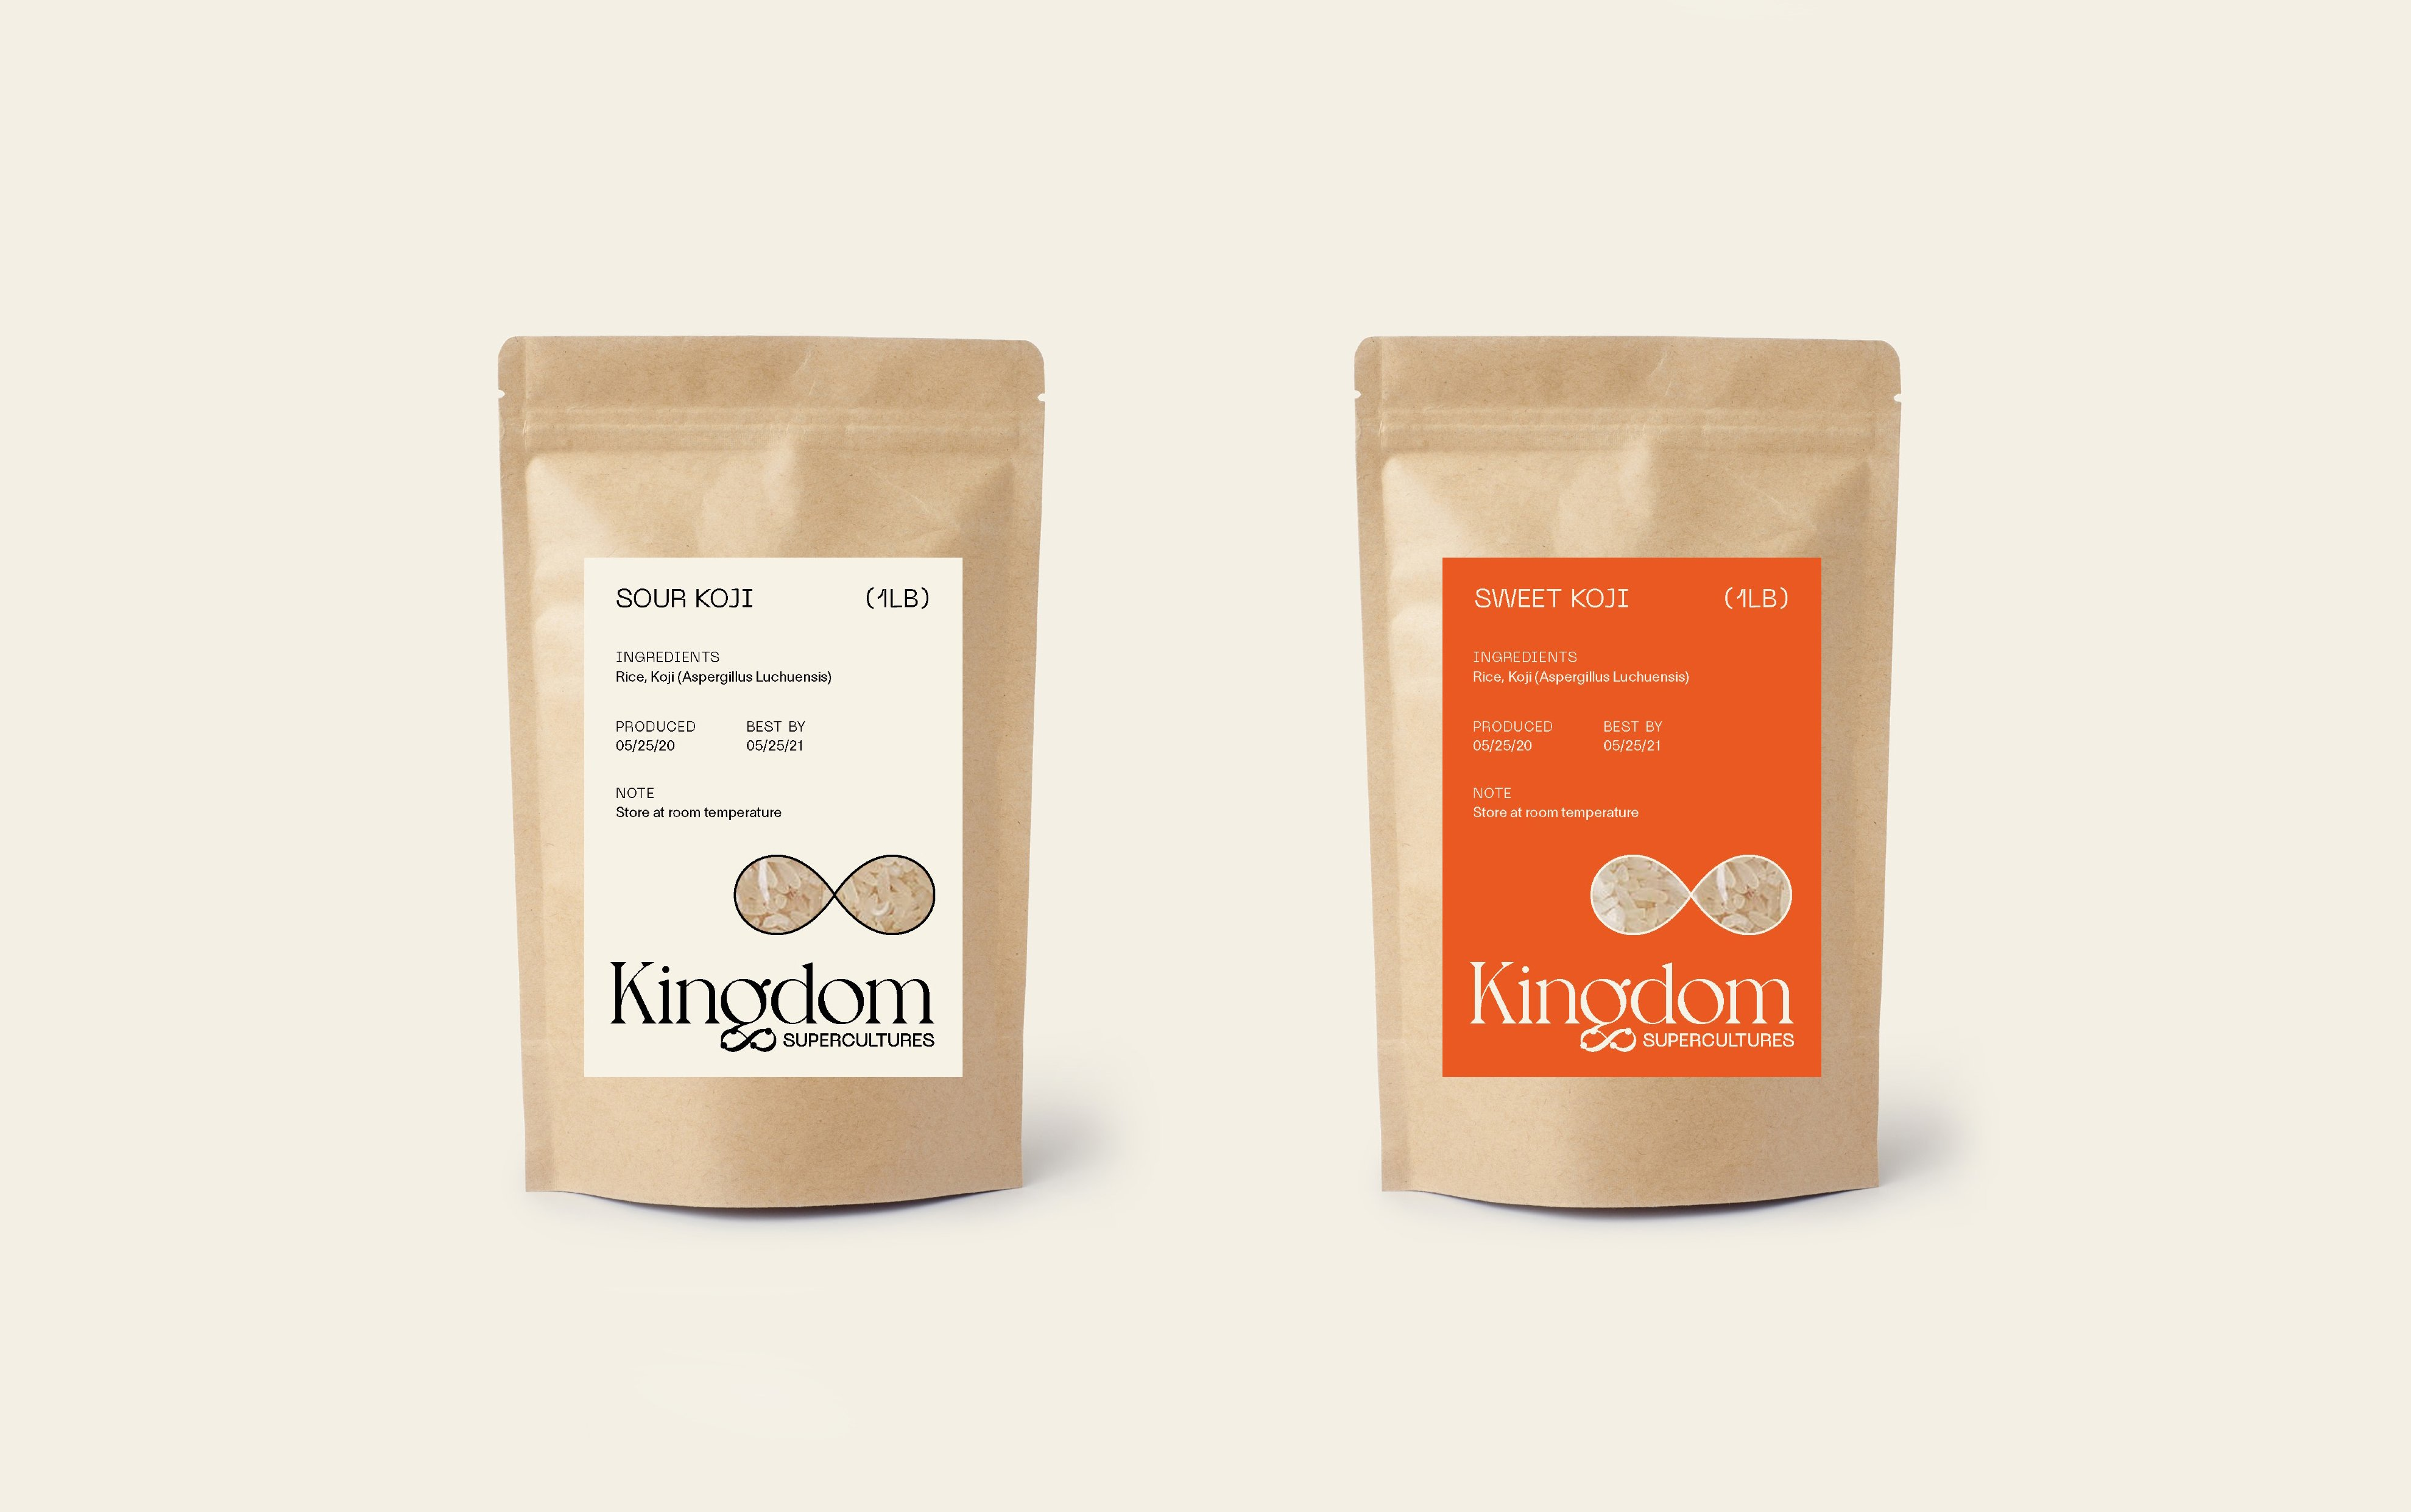 Kingdom Supercultures packaging, designed by RoAndCo Studio